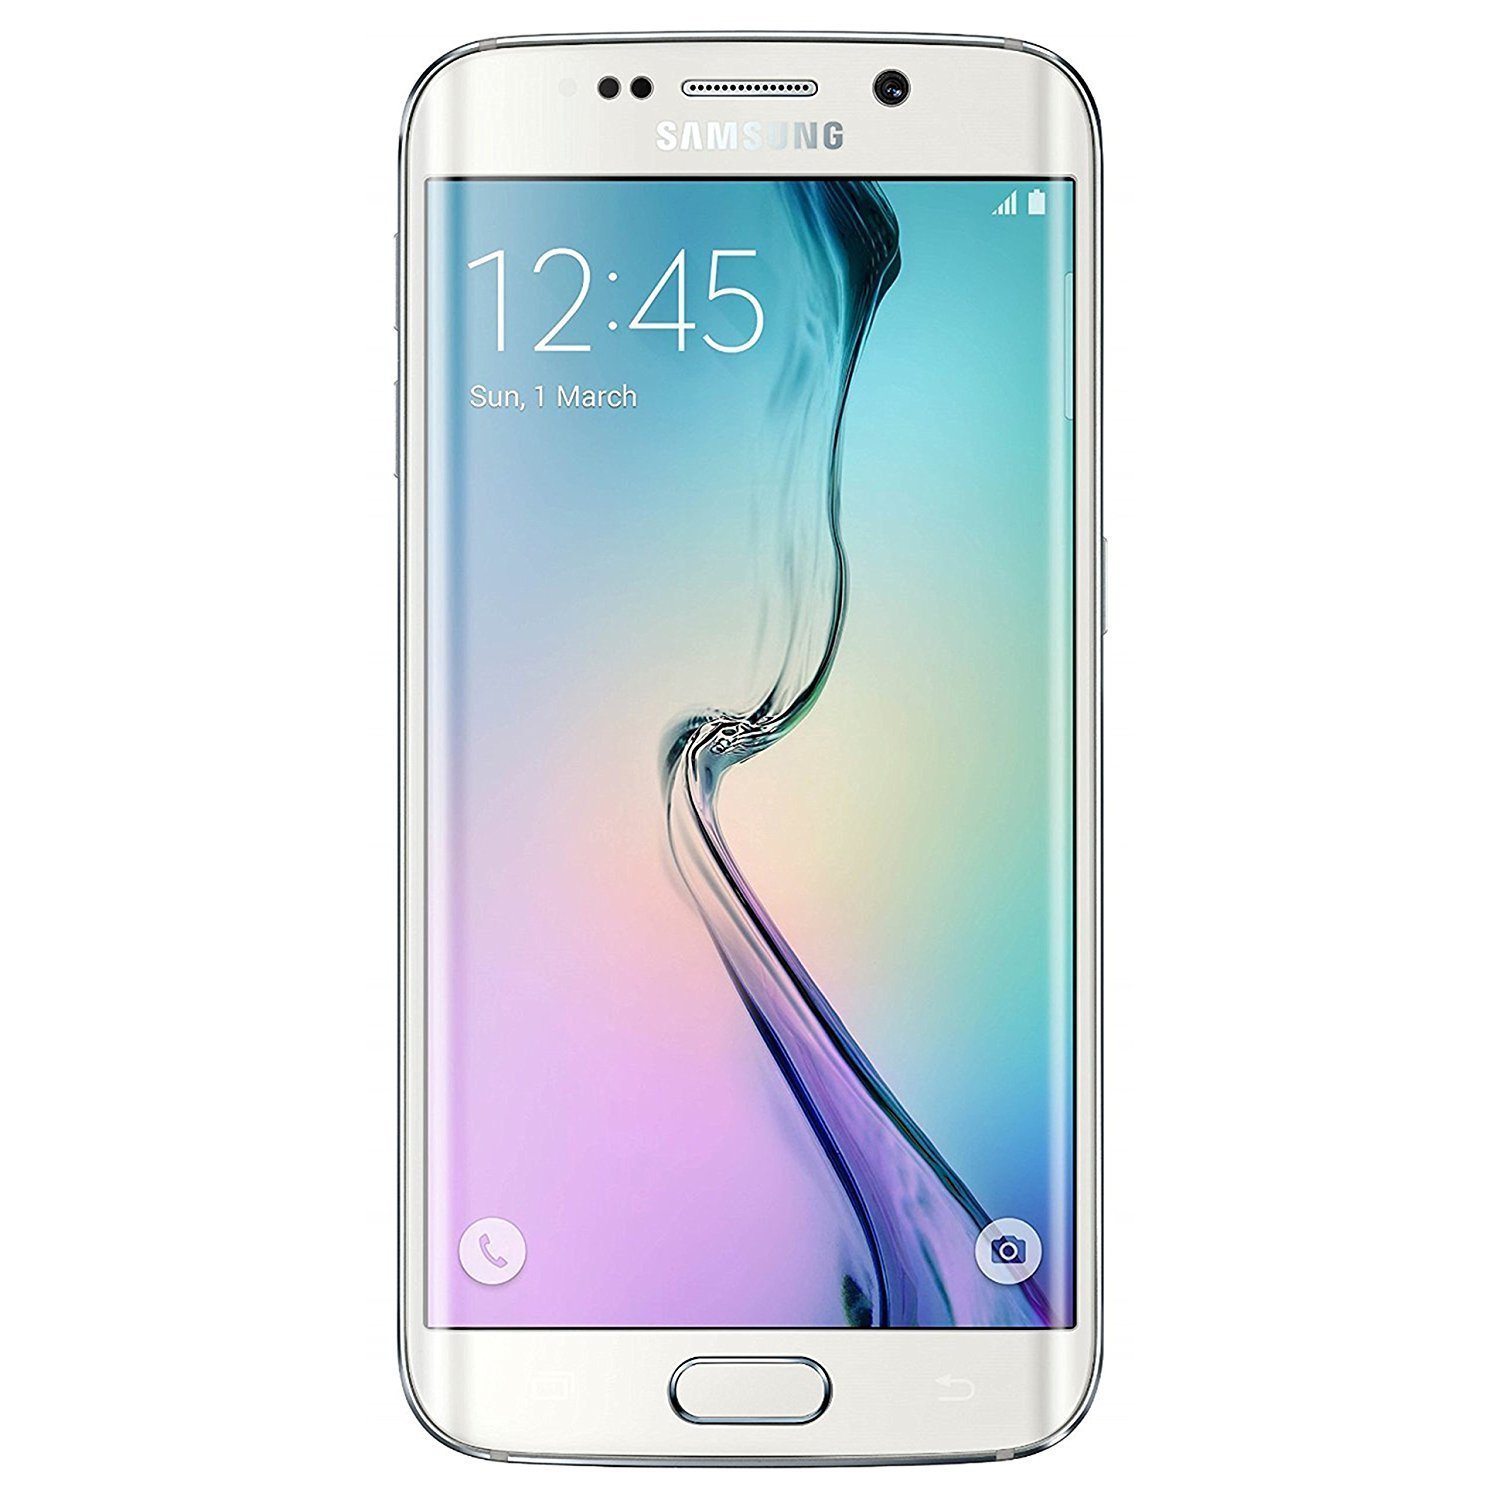 Samsung Galaxy S6 Edge G925A 32GB UNLOCKED GSM 4G LTE PEARL WHITE Octa-Core Android Smartphone (PREPAIEMENT 50% DOWN)